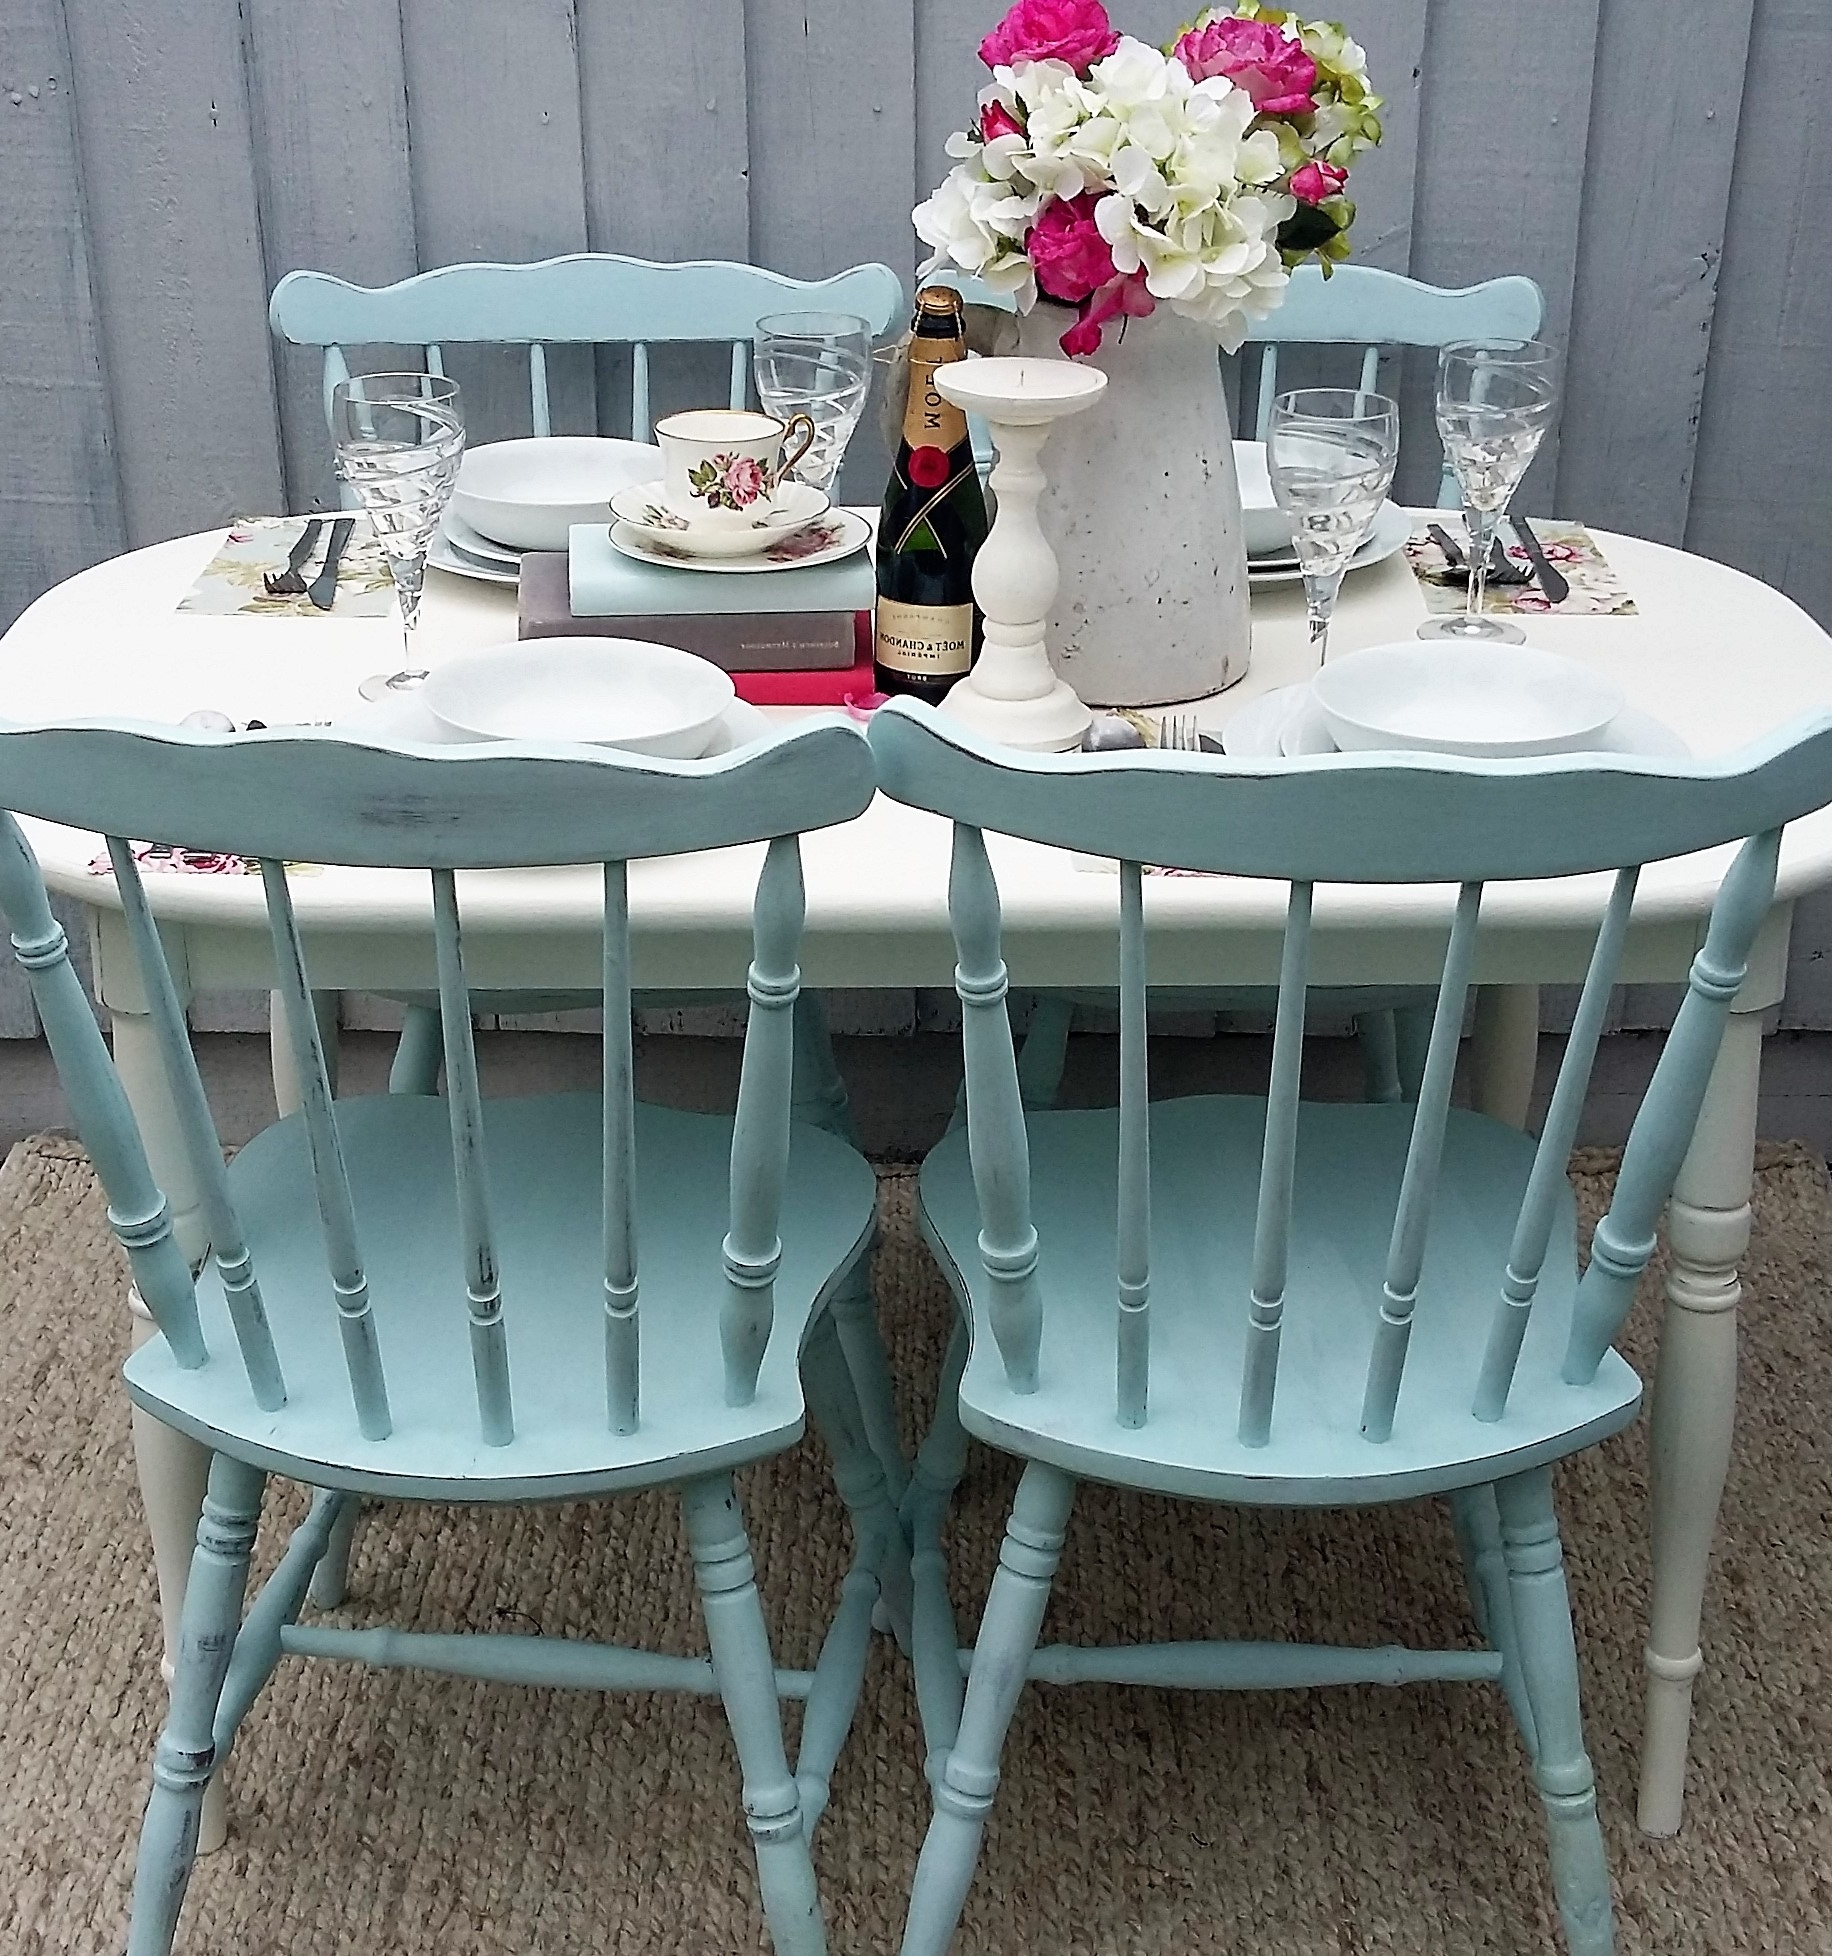 Shabby Chic Dining Sets For Widely Used Shabby Chic/vintage Dining Table & Chairs (View 7 of 25)